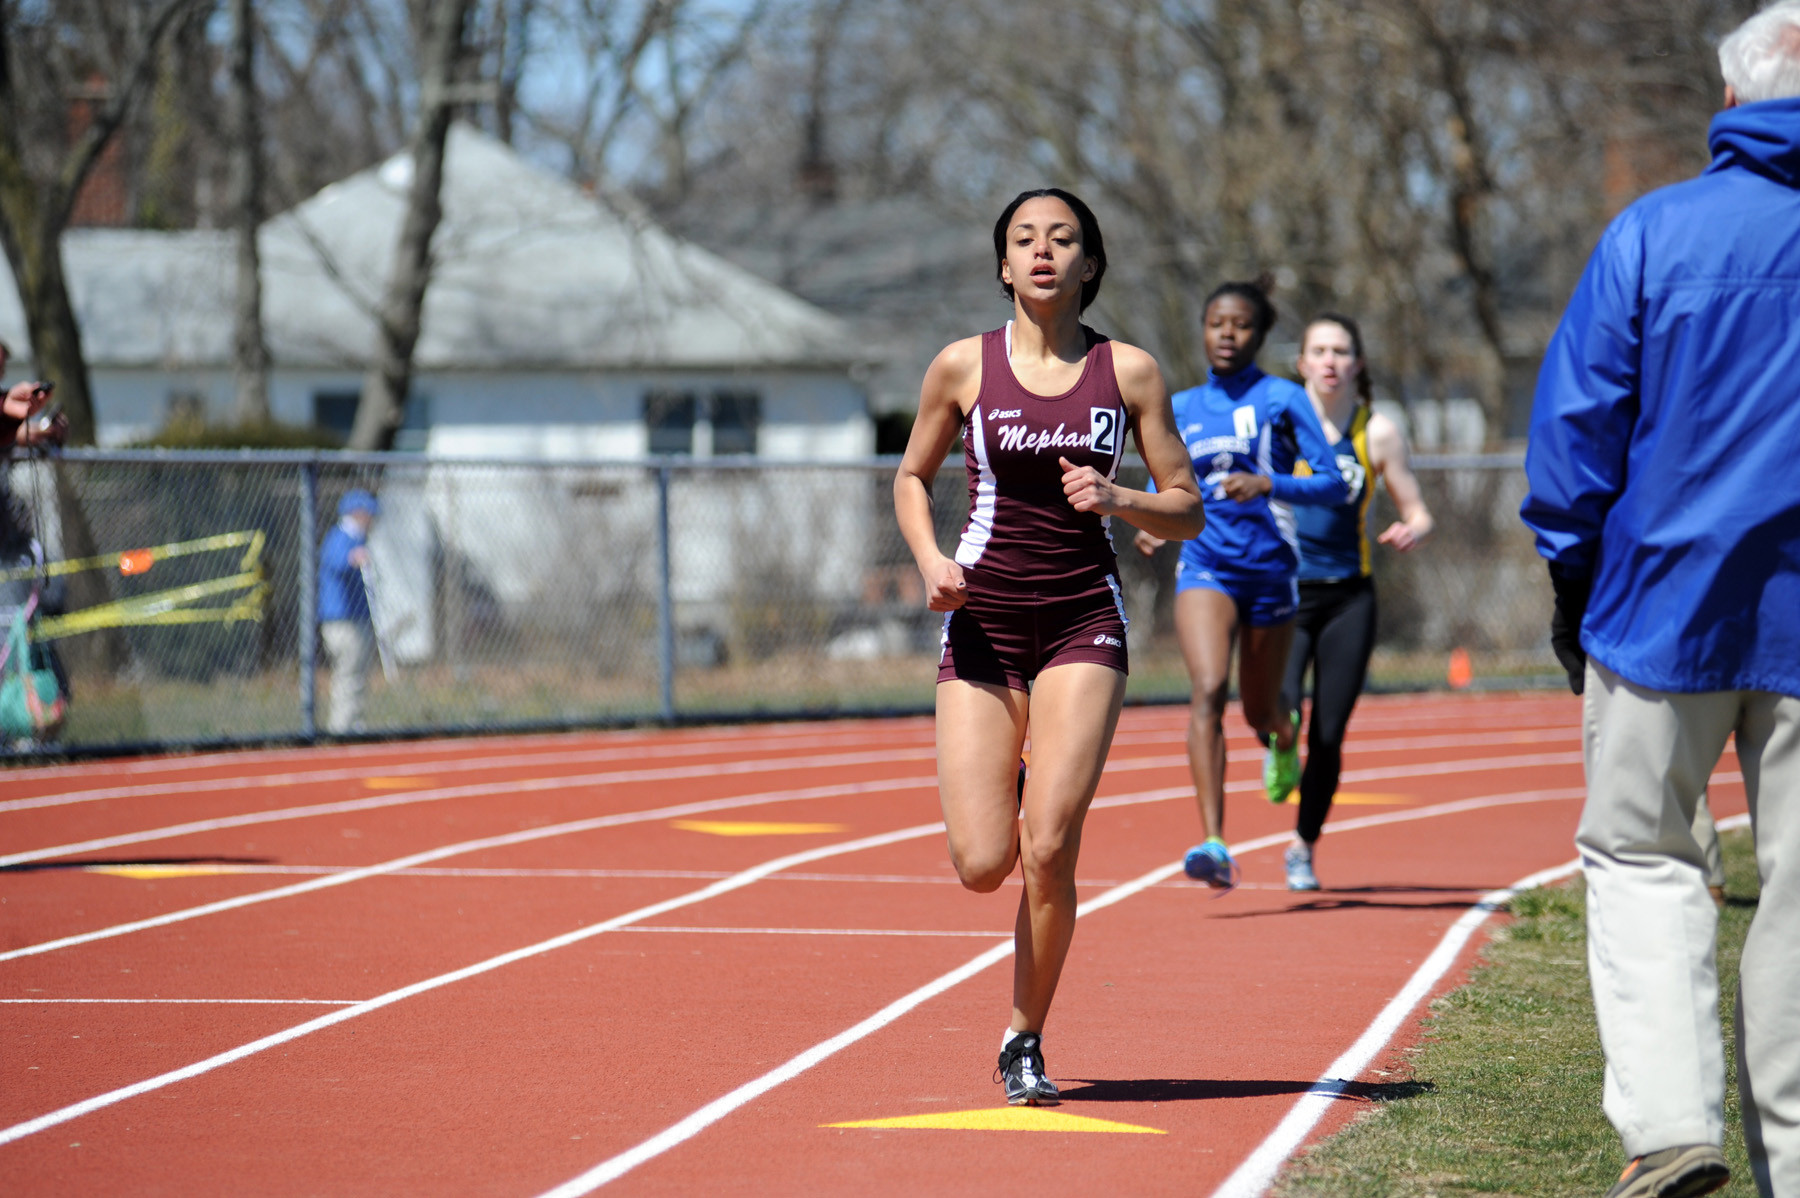 Mepham's Nadine Simpson took the role of the rabbit, as she led the first 800 meters in the girls' 1,500-meter race.